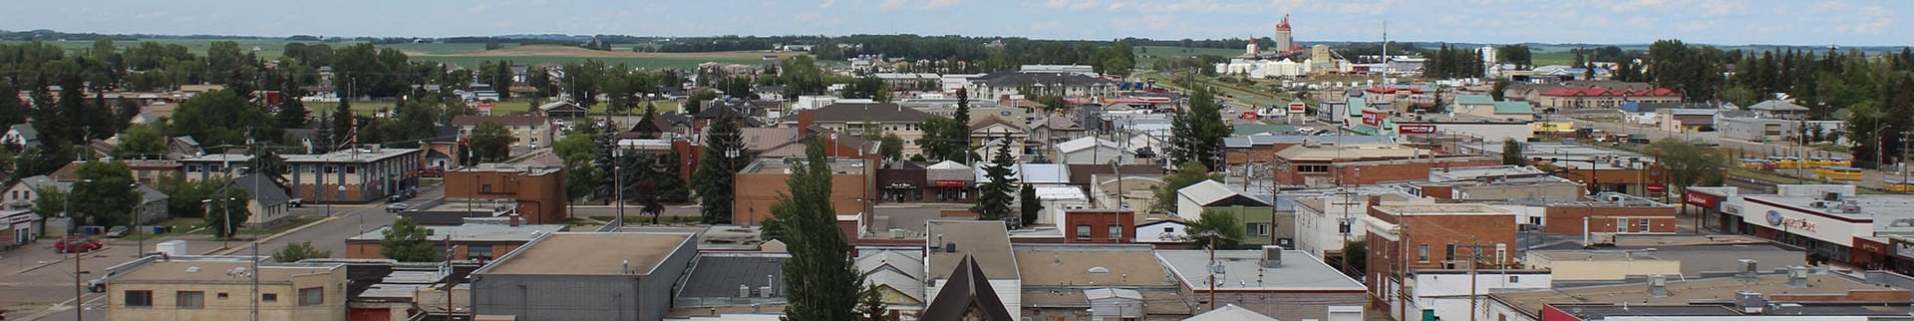 Town of Olds Neighbourhood